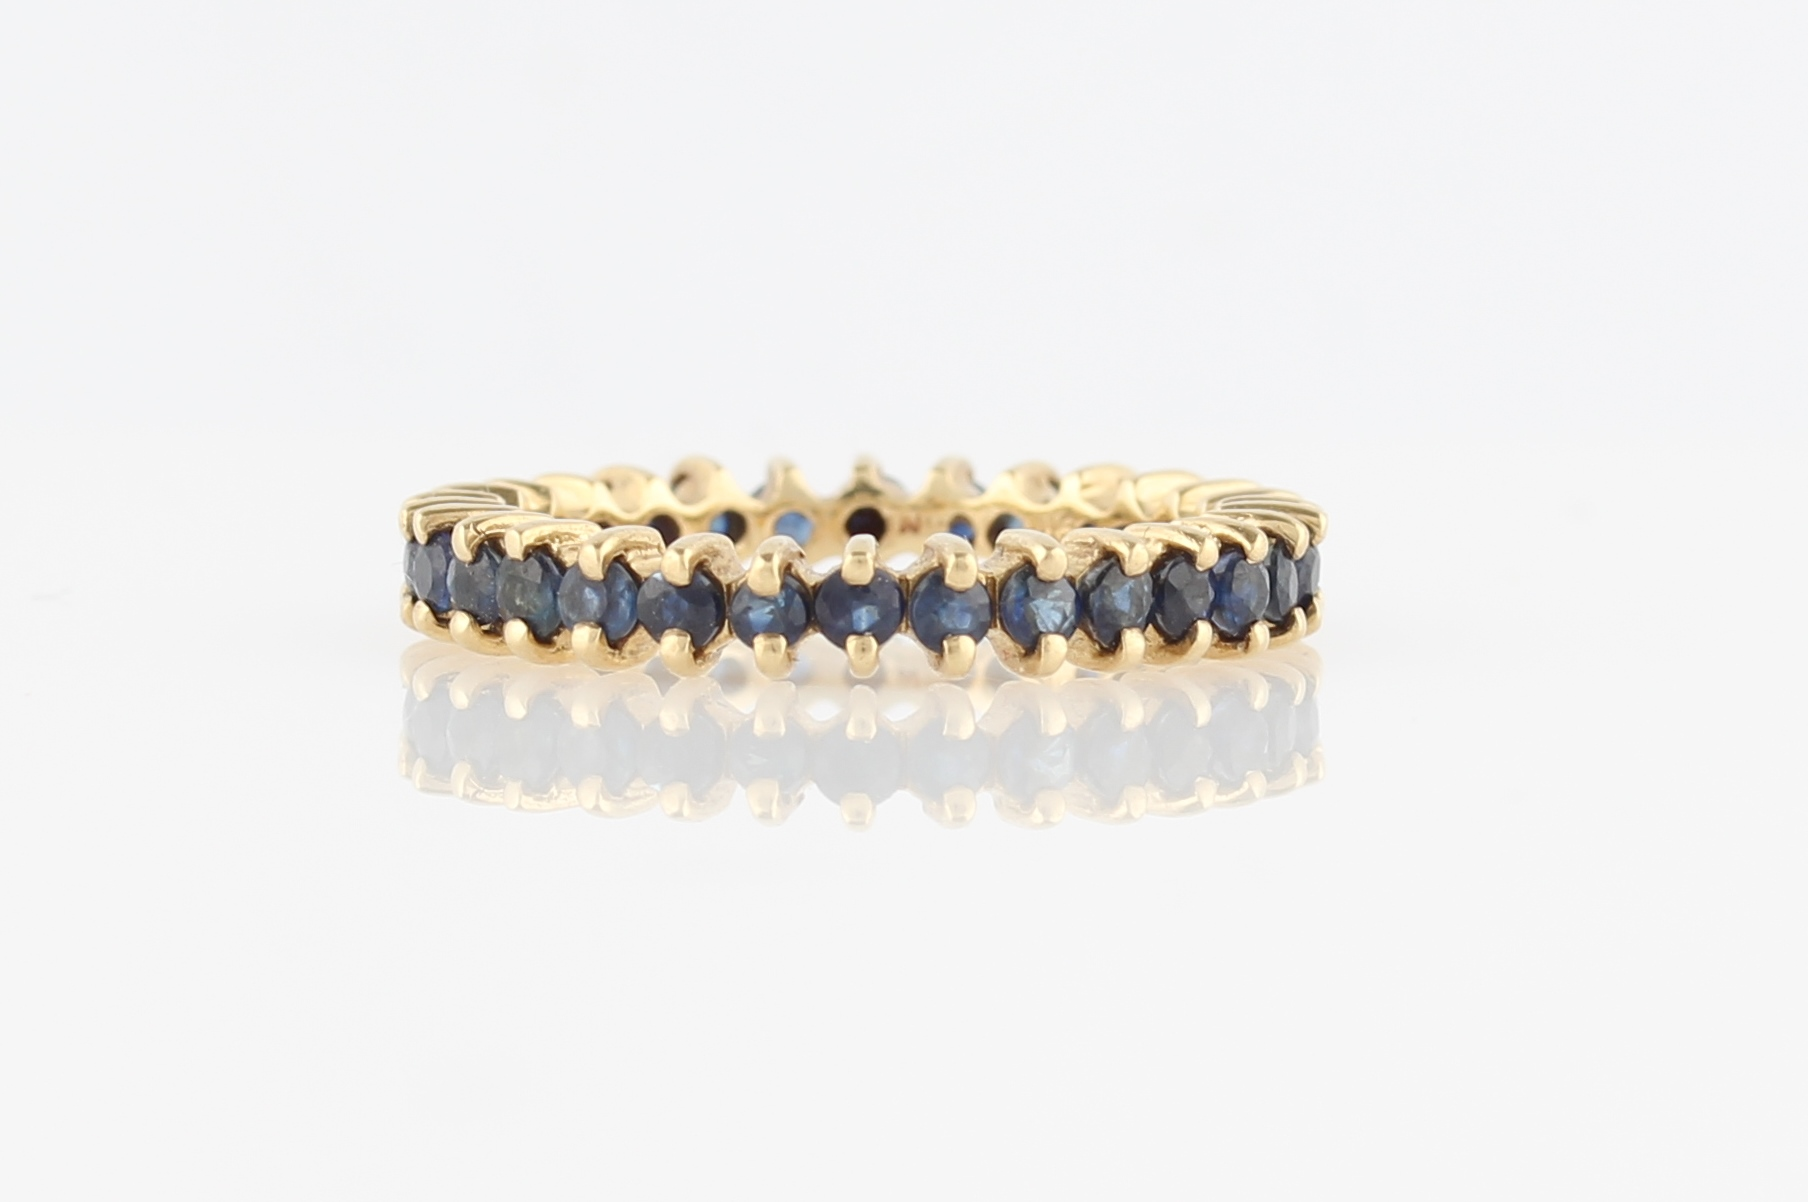 Lot 43 - A sapphire full eternity ring, set with round cut sapphires, stamped 9k, ring size L½.